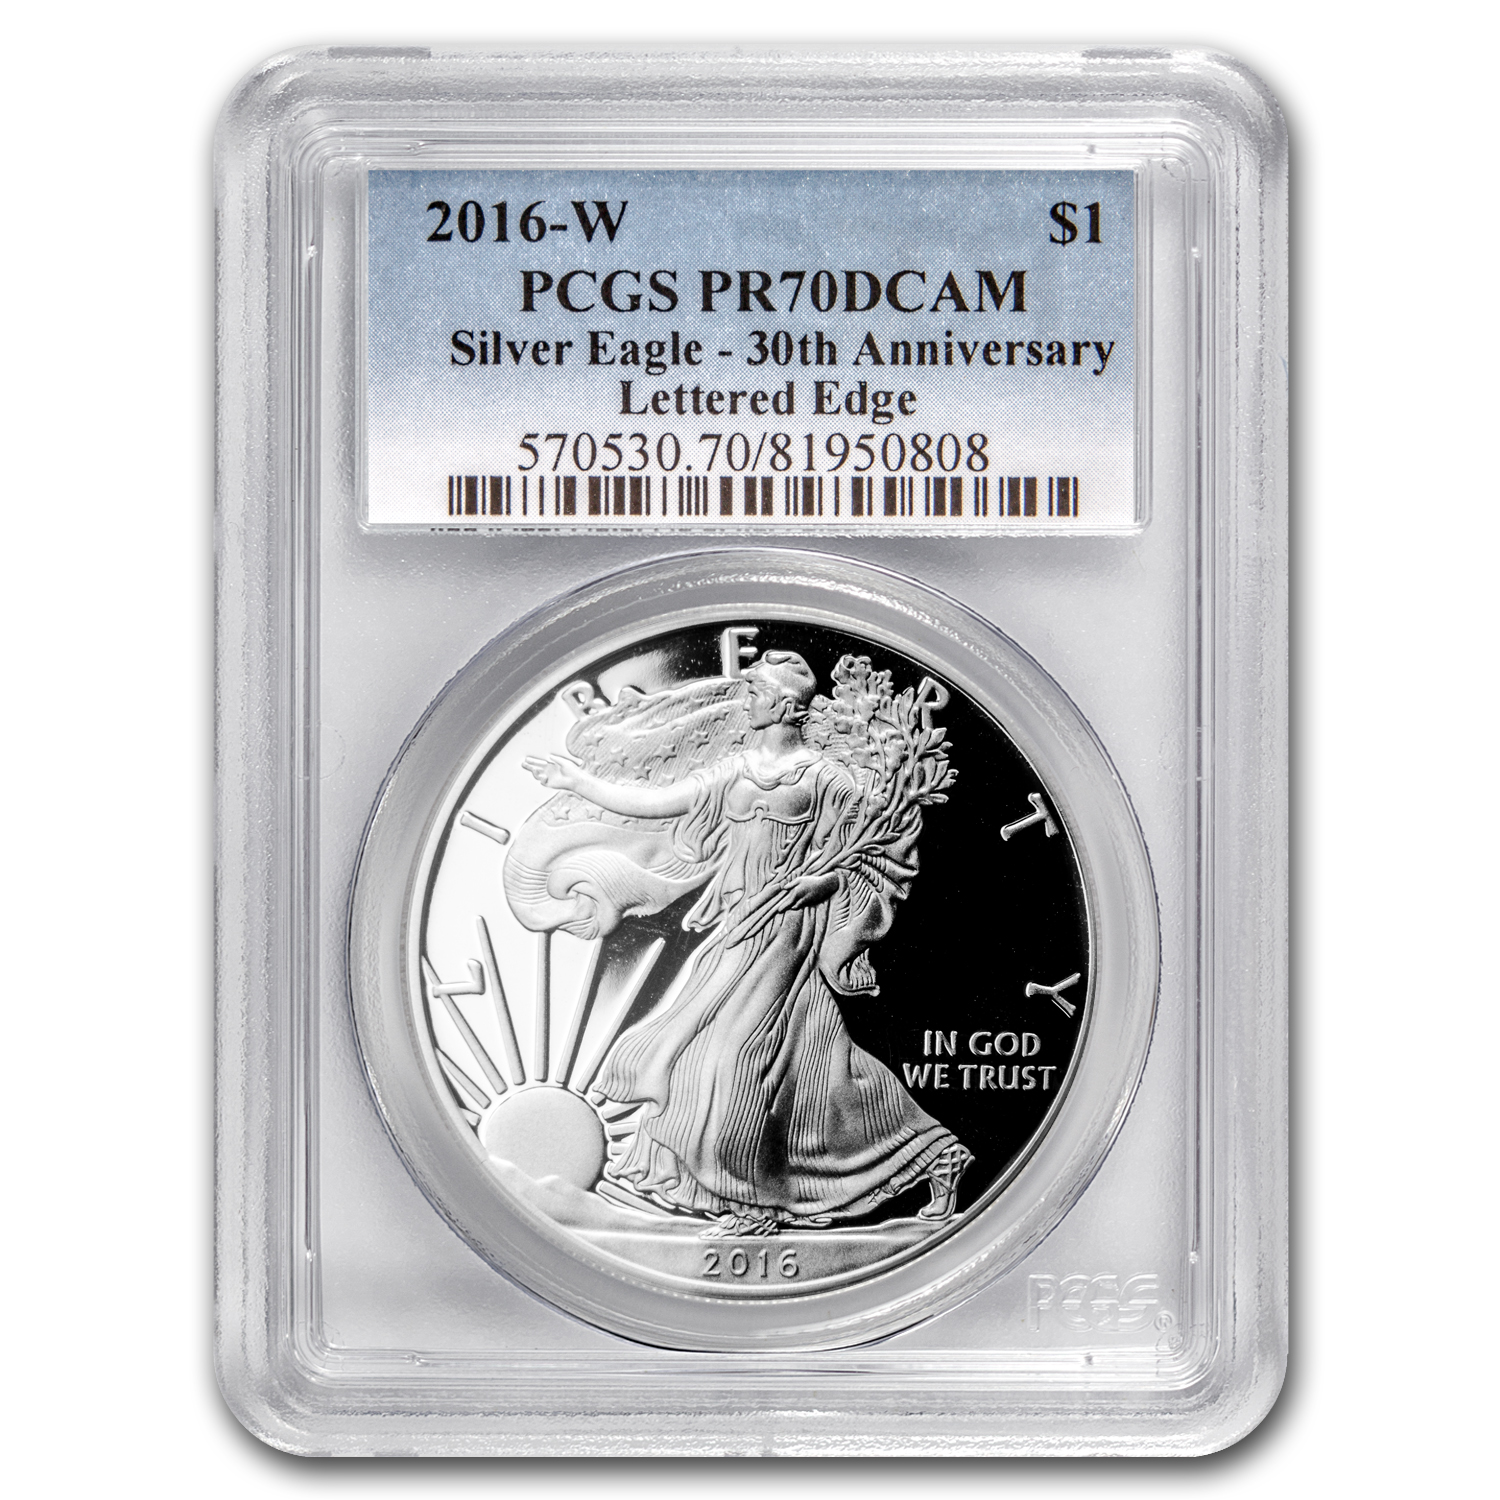 2016-W Proof Silver American Eagle PR-70 PCGS